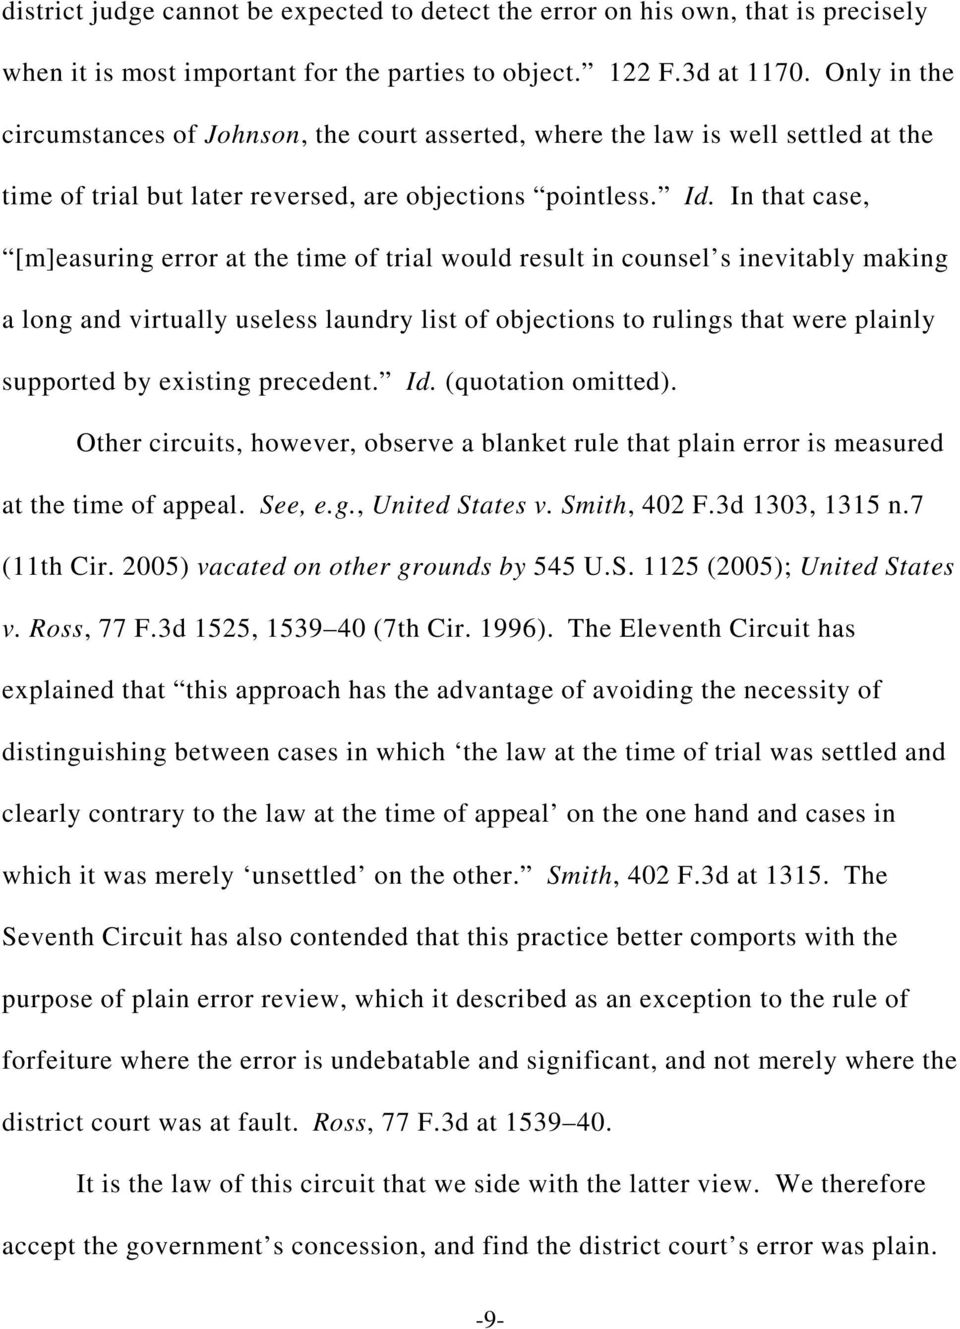 In that case, [m]easuring error at the time of trial would result in counsel s inevitably making a long and virtually useless laundry list of objections to rulings that were plainly supported by